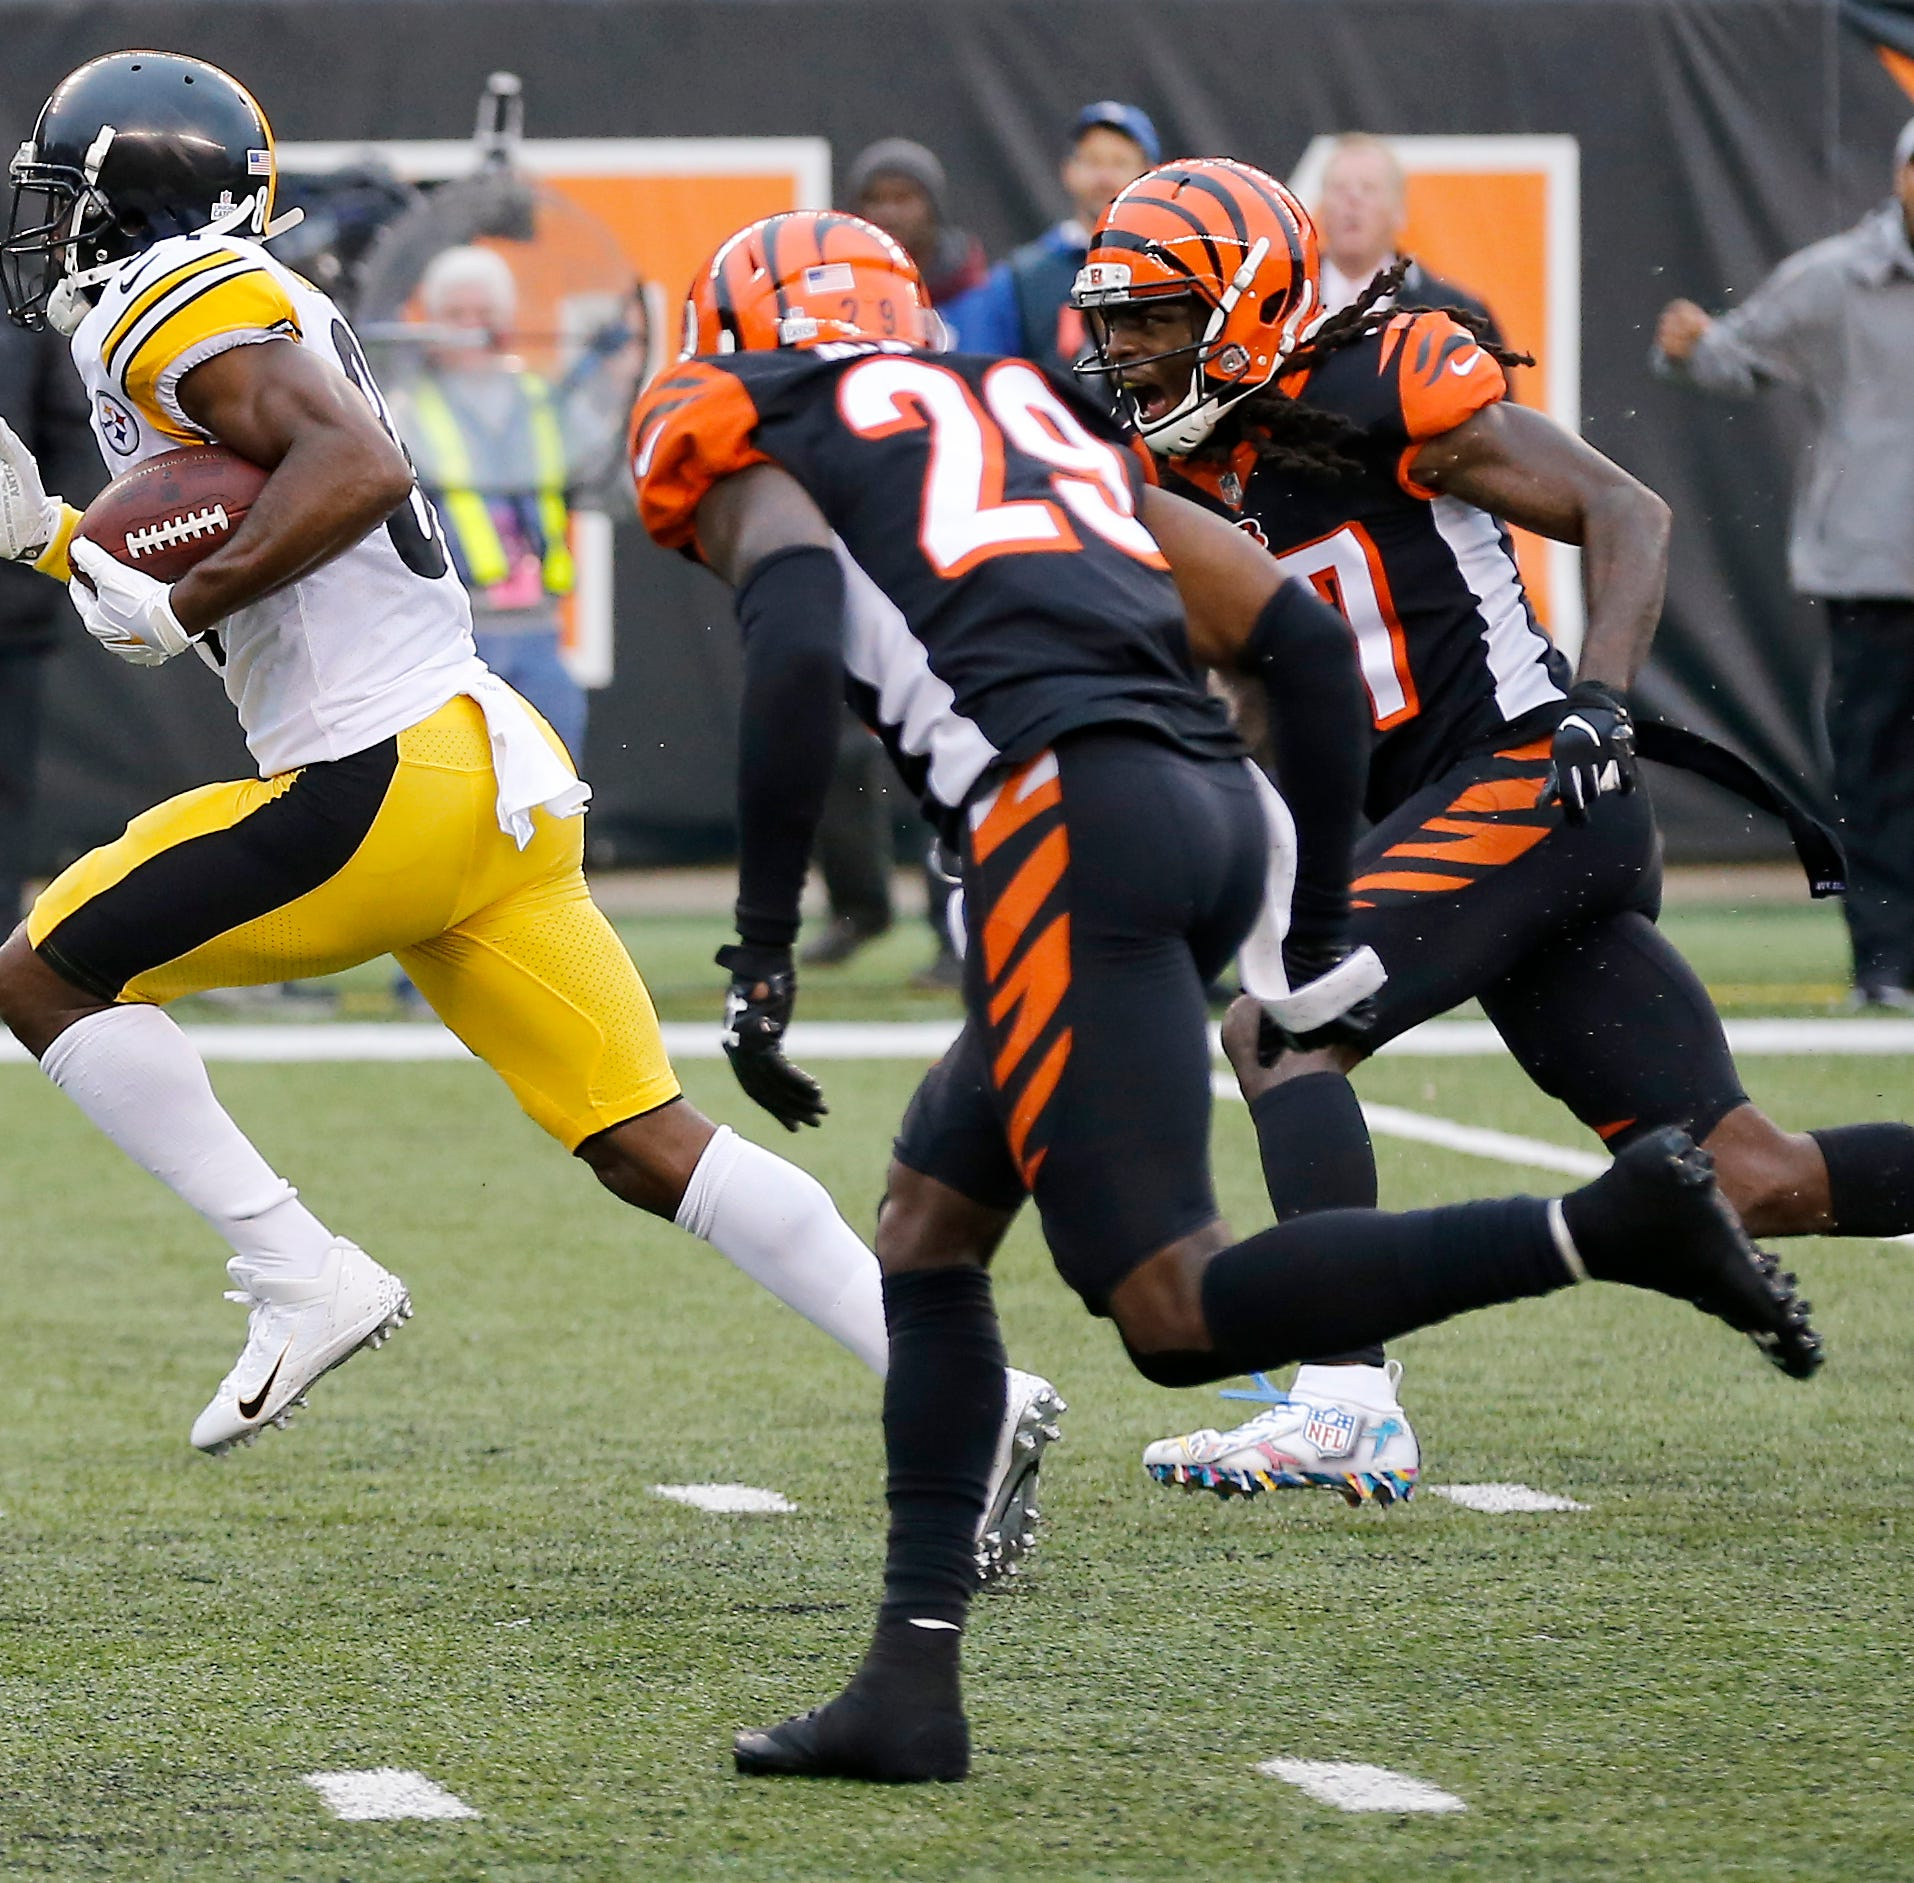 NFL VP of Officiating Al Riveron on Steelers' TD: Bengals' defender initiated contact